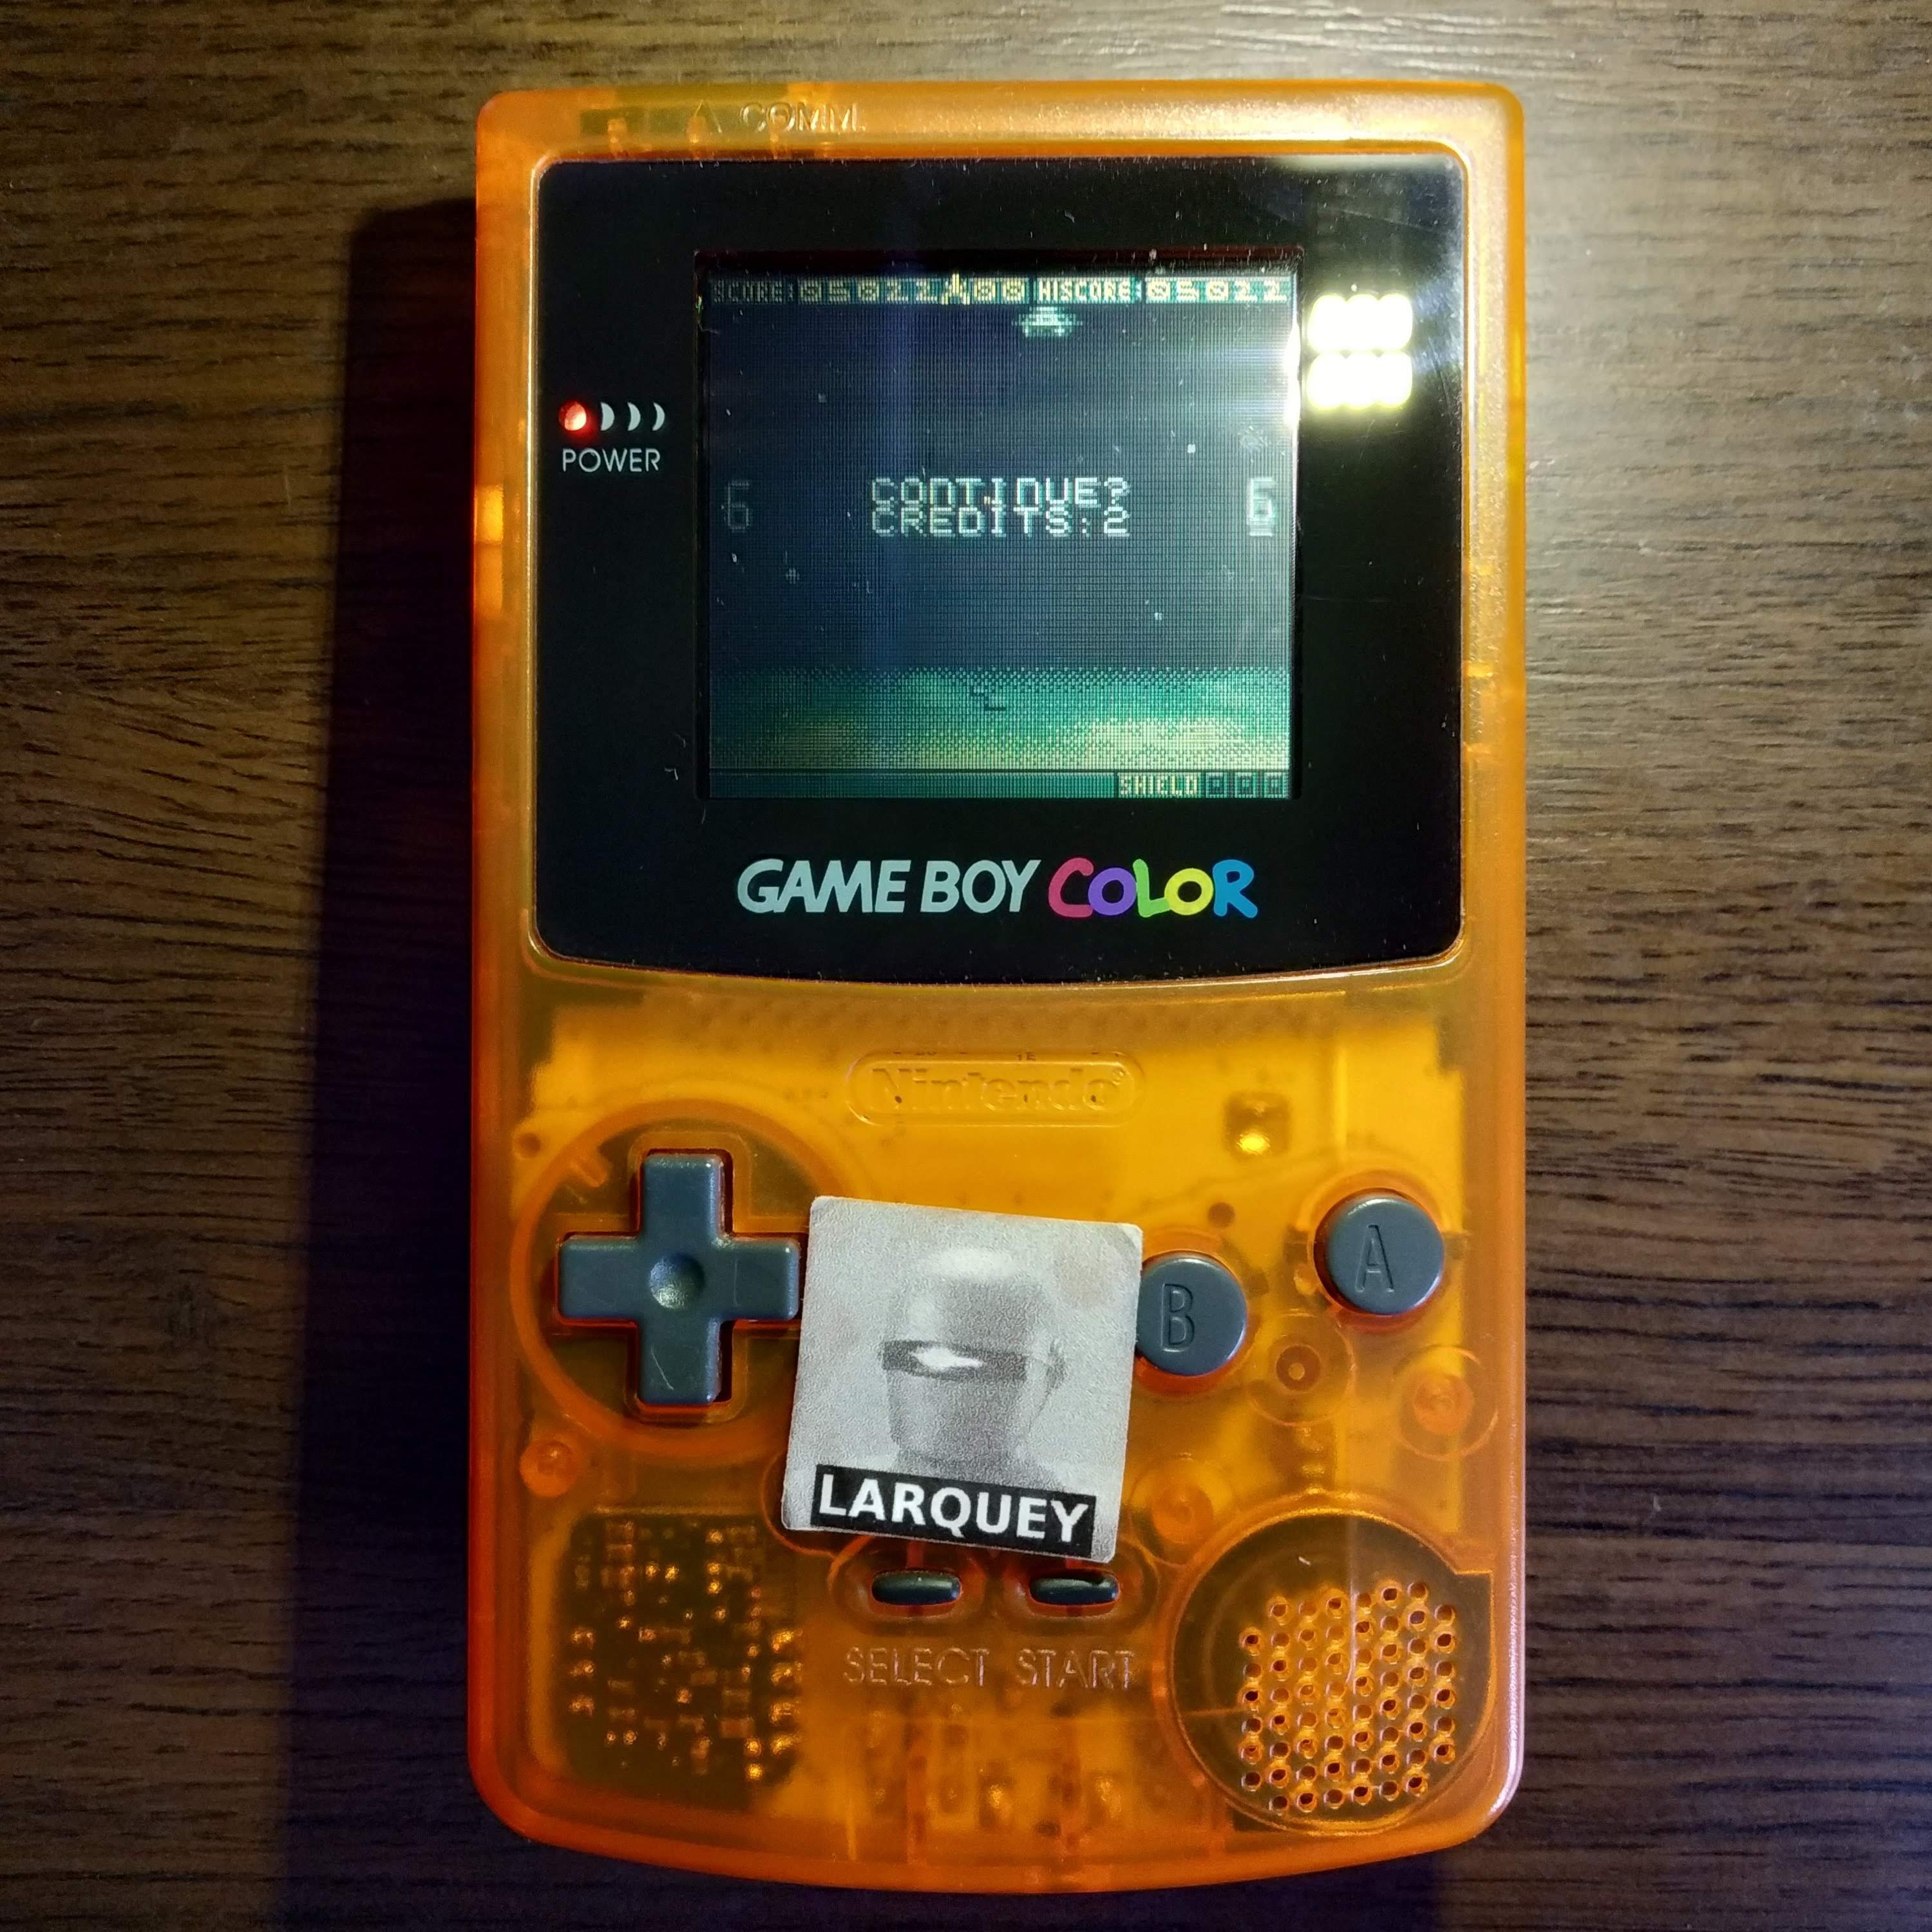 Larquey: Space Invaders [Hard] (Game Boy Color) 5,022 points on 2020-07-15 11:08:11